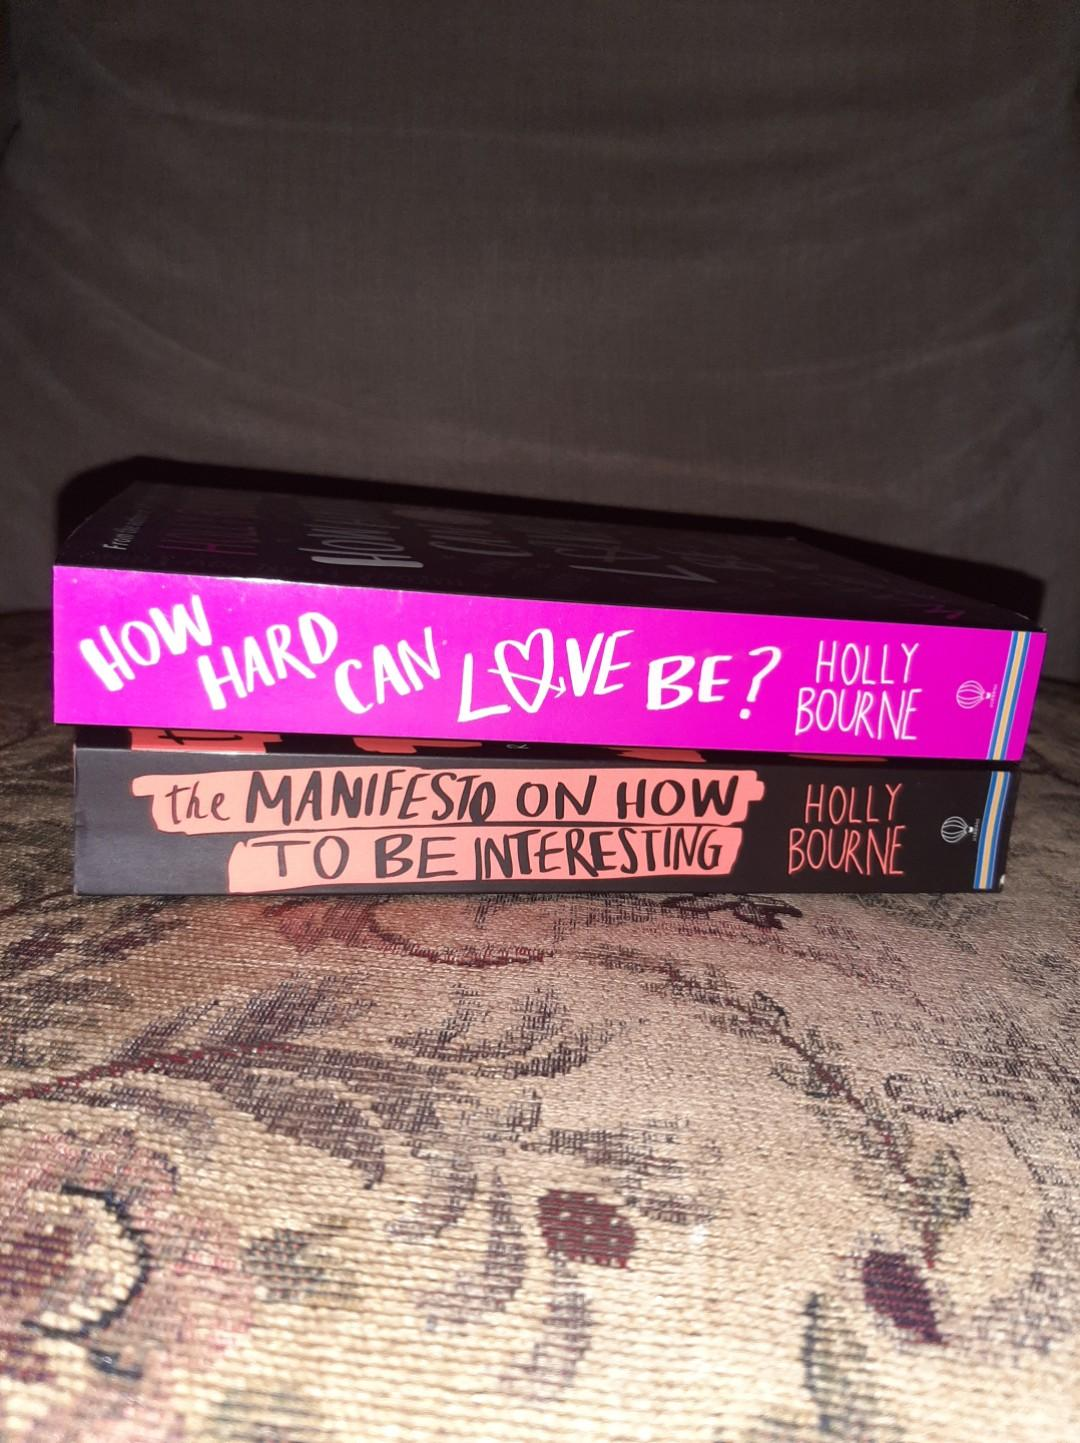 The manifesto on how to be interesting & How hard can love be? by: Holly Bourne